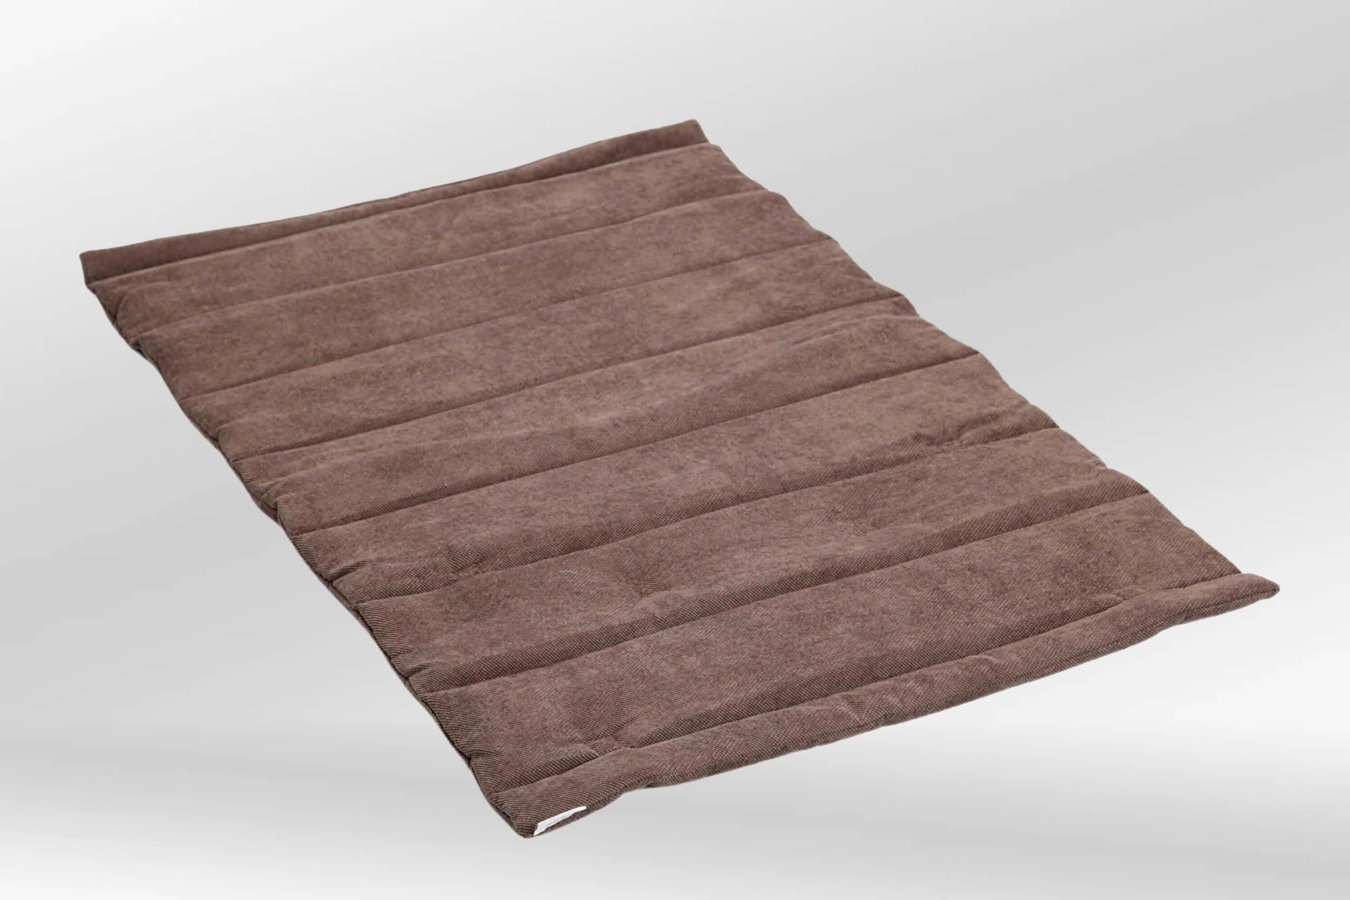 Travel Mat / Travel Bed Madison brown